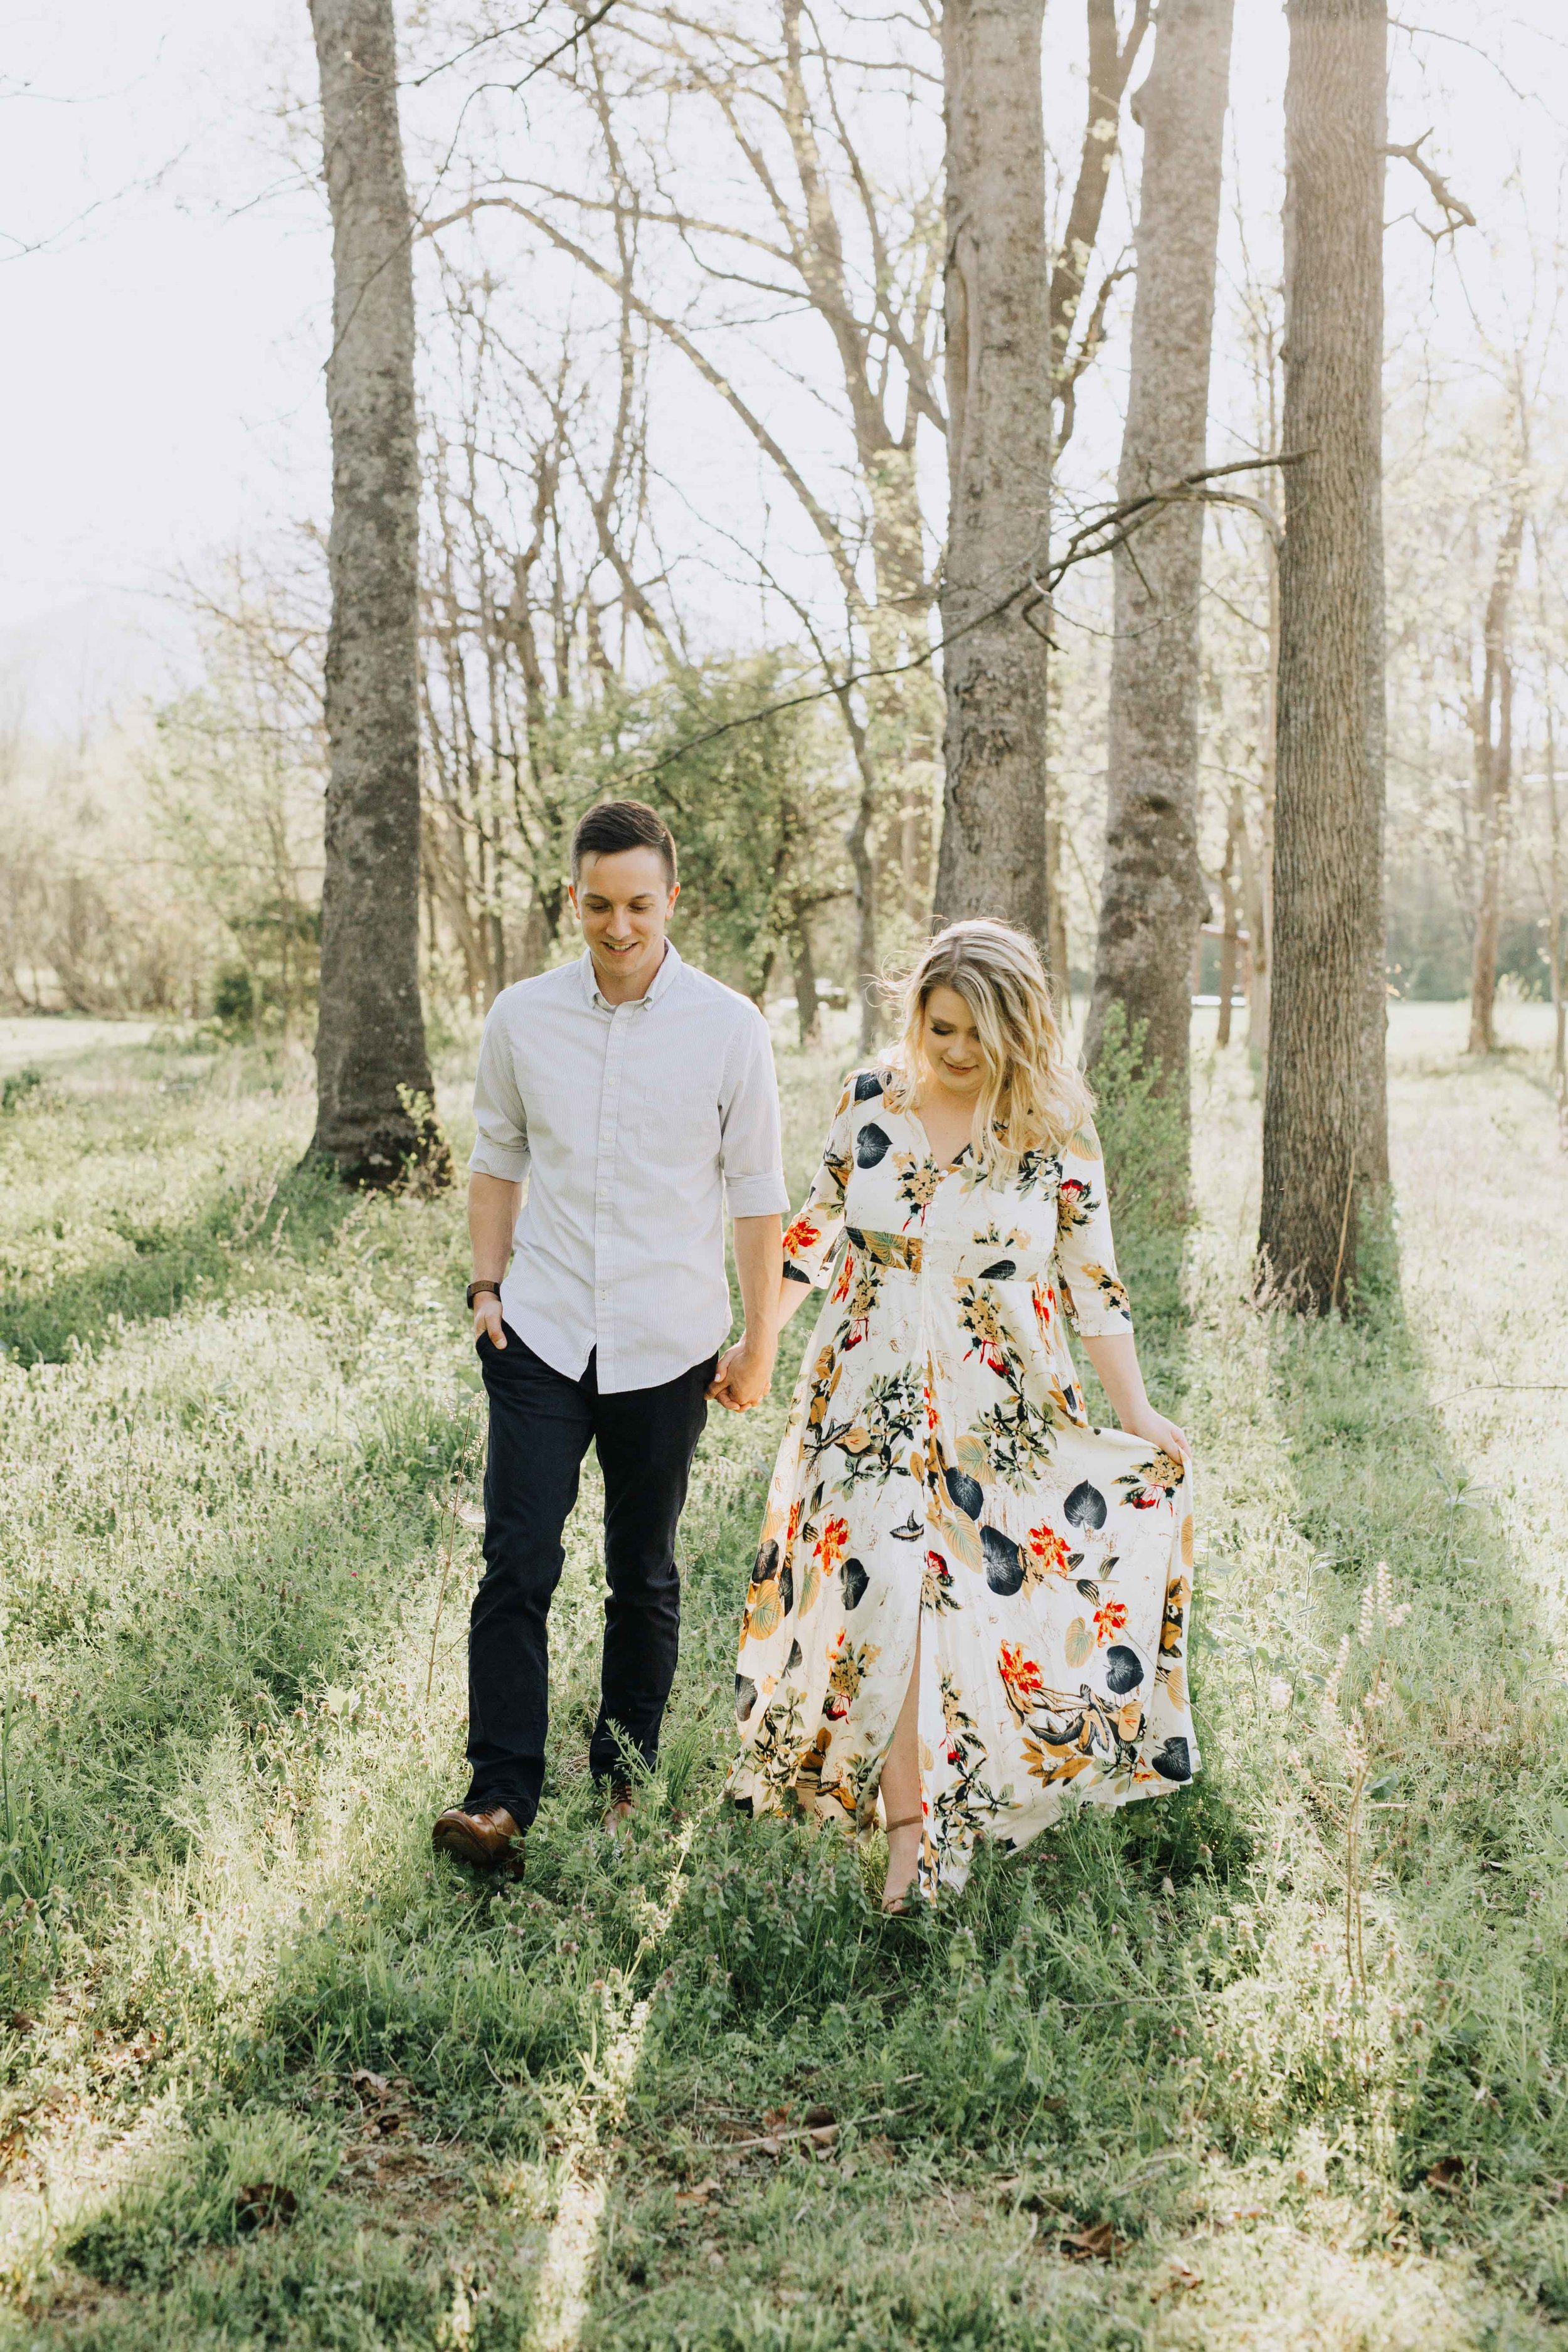 Jacqueline-Waters-Photography-Floral-Dress-Engagement-Virginia-Mountains- (38).jpg